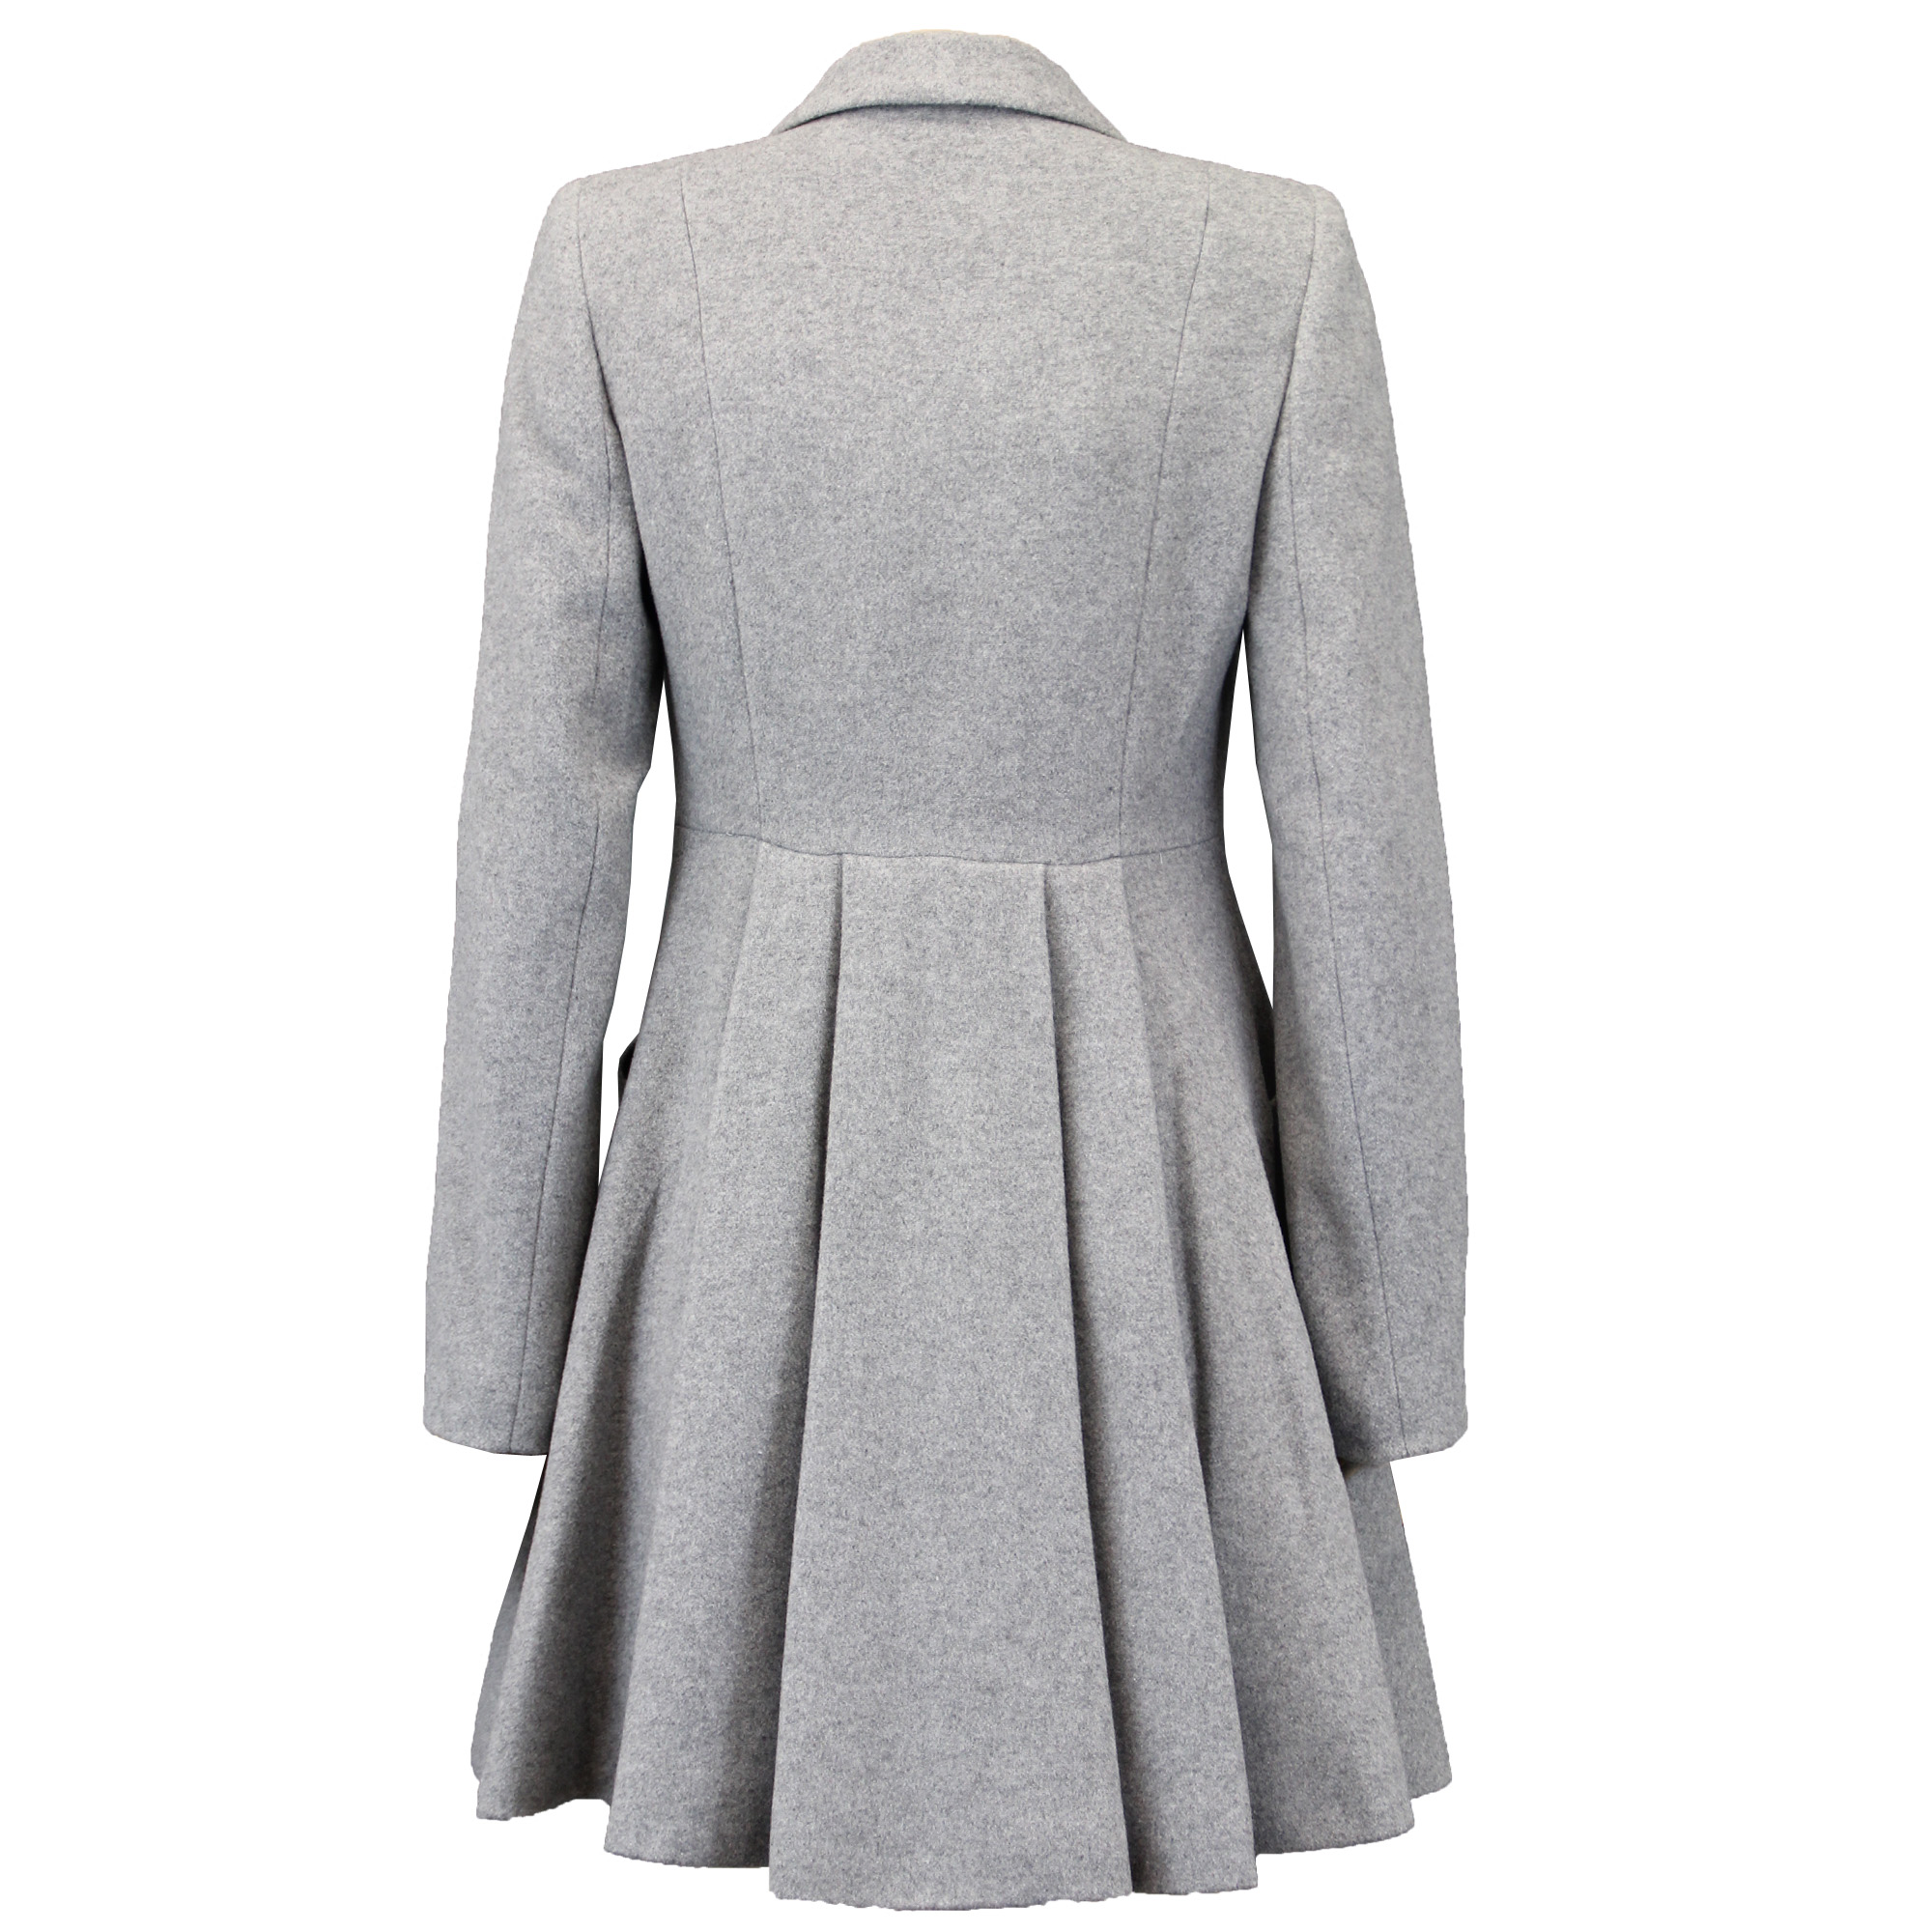 A beautifully designed ladies wool coat is definitely a wardrobe must have. Wool coats made by a fine coat maker are a true asset, and one that can give her a put together look every time she leaves the house.